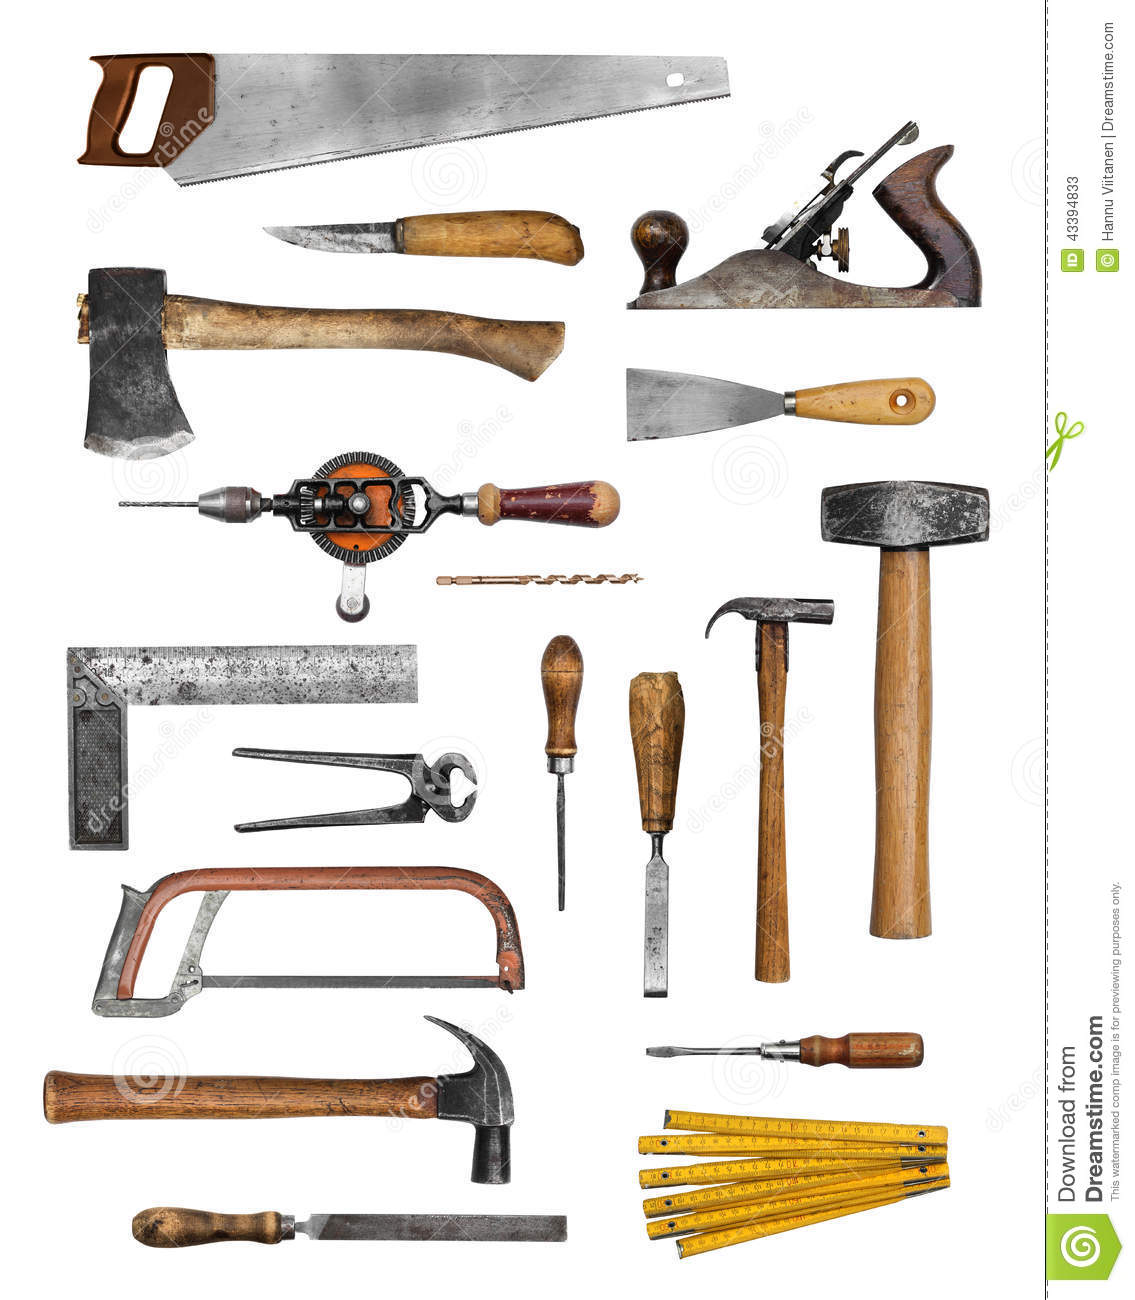 Old carpenter hand tools stock image Image of drill